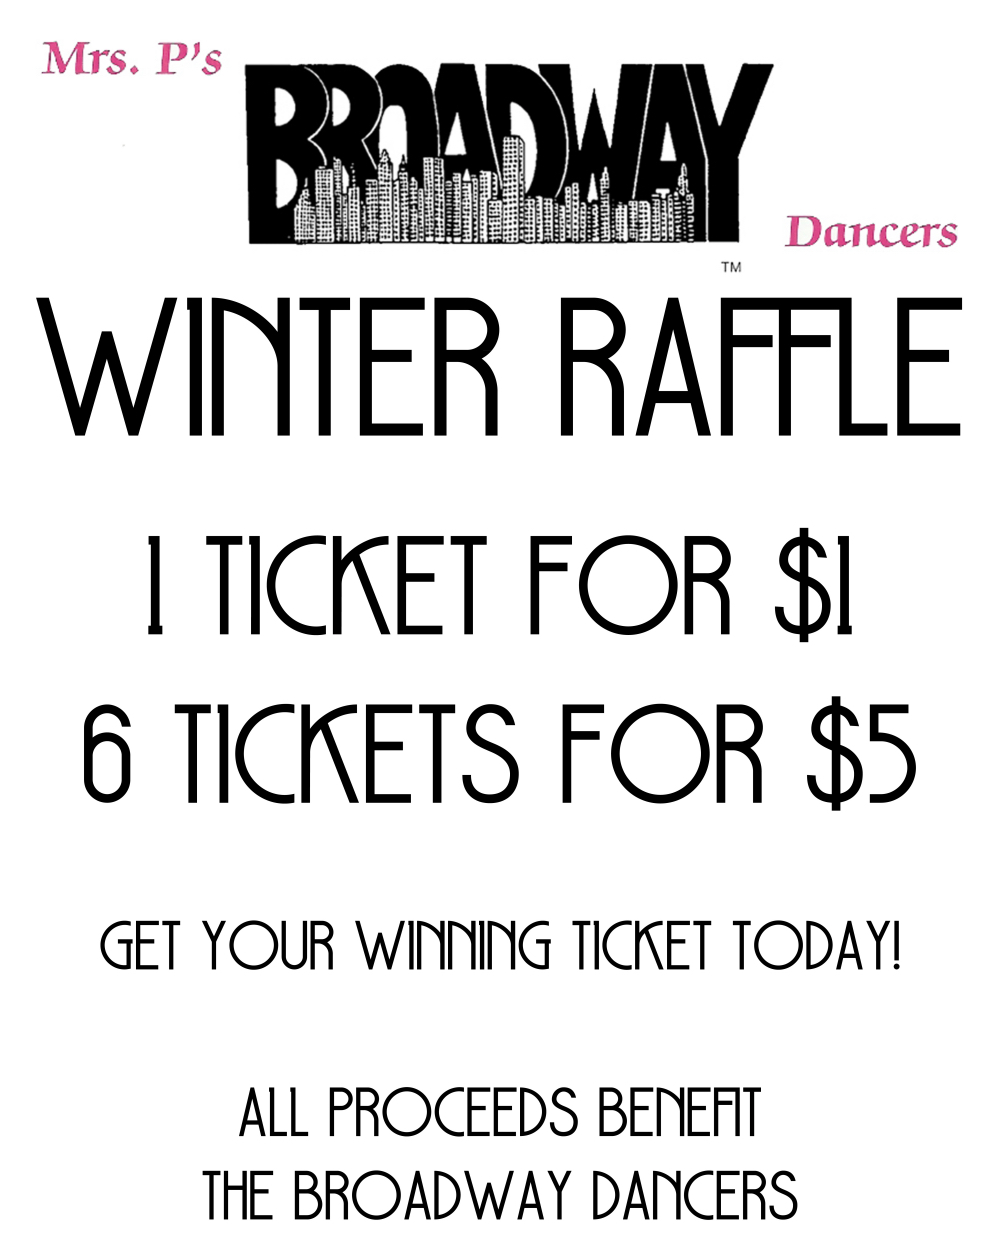 Mrs P's Broadway Dancers Winter Raffle